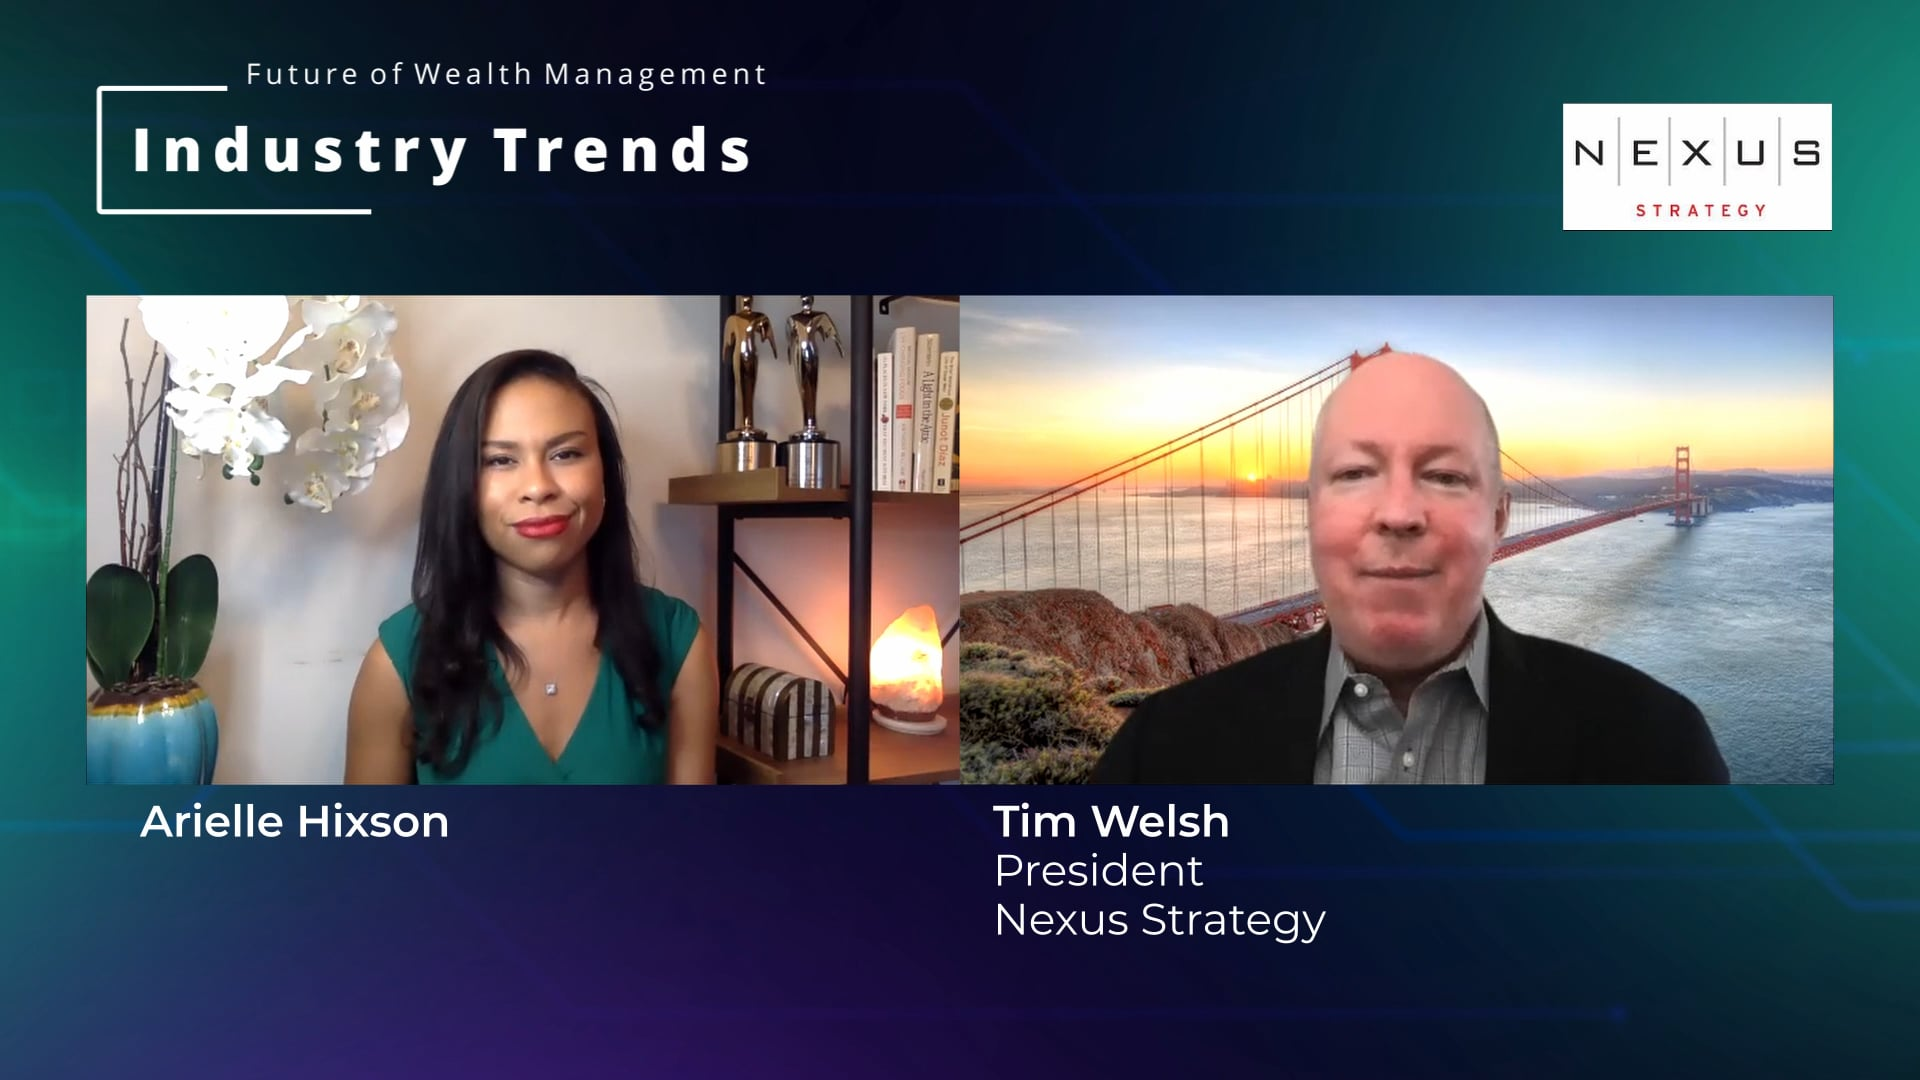 Future of Wealth Management, Industry Trends